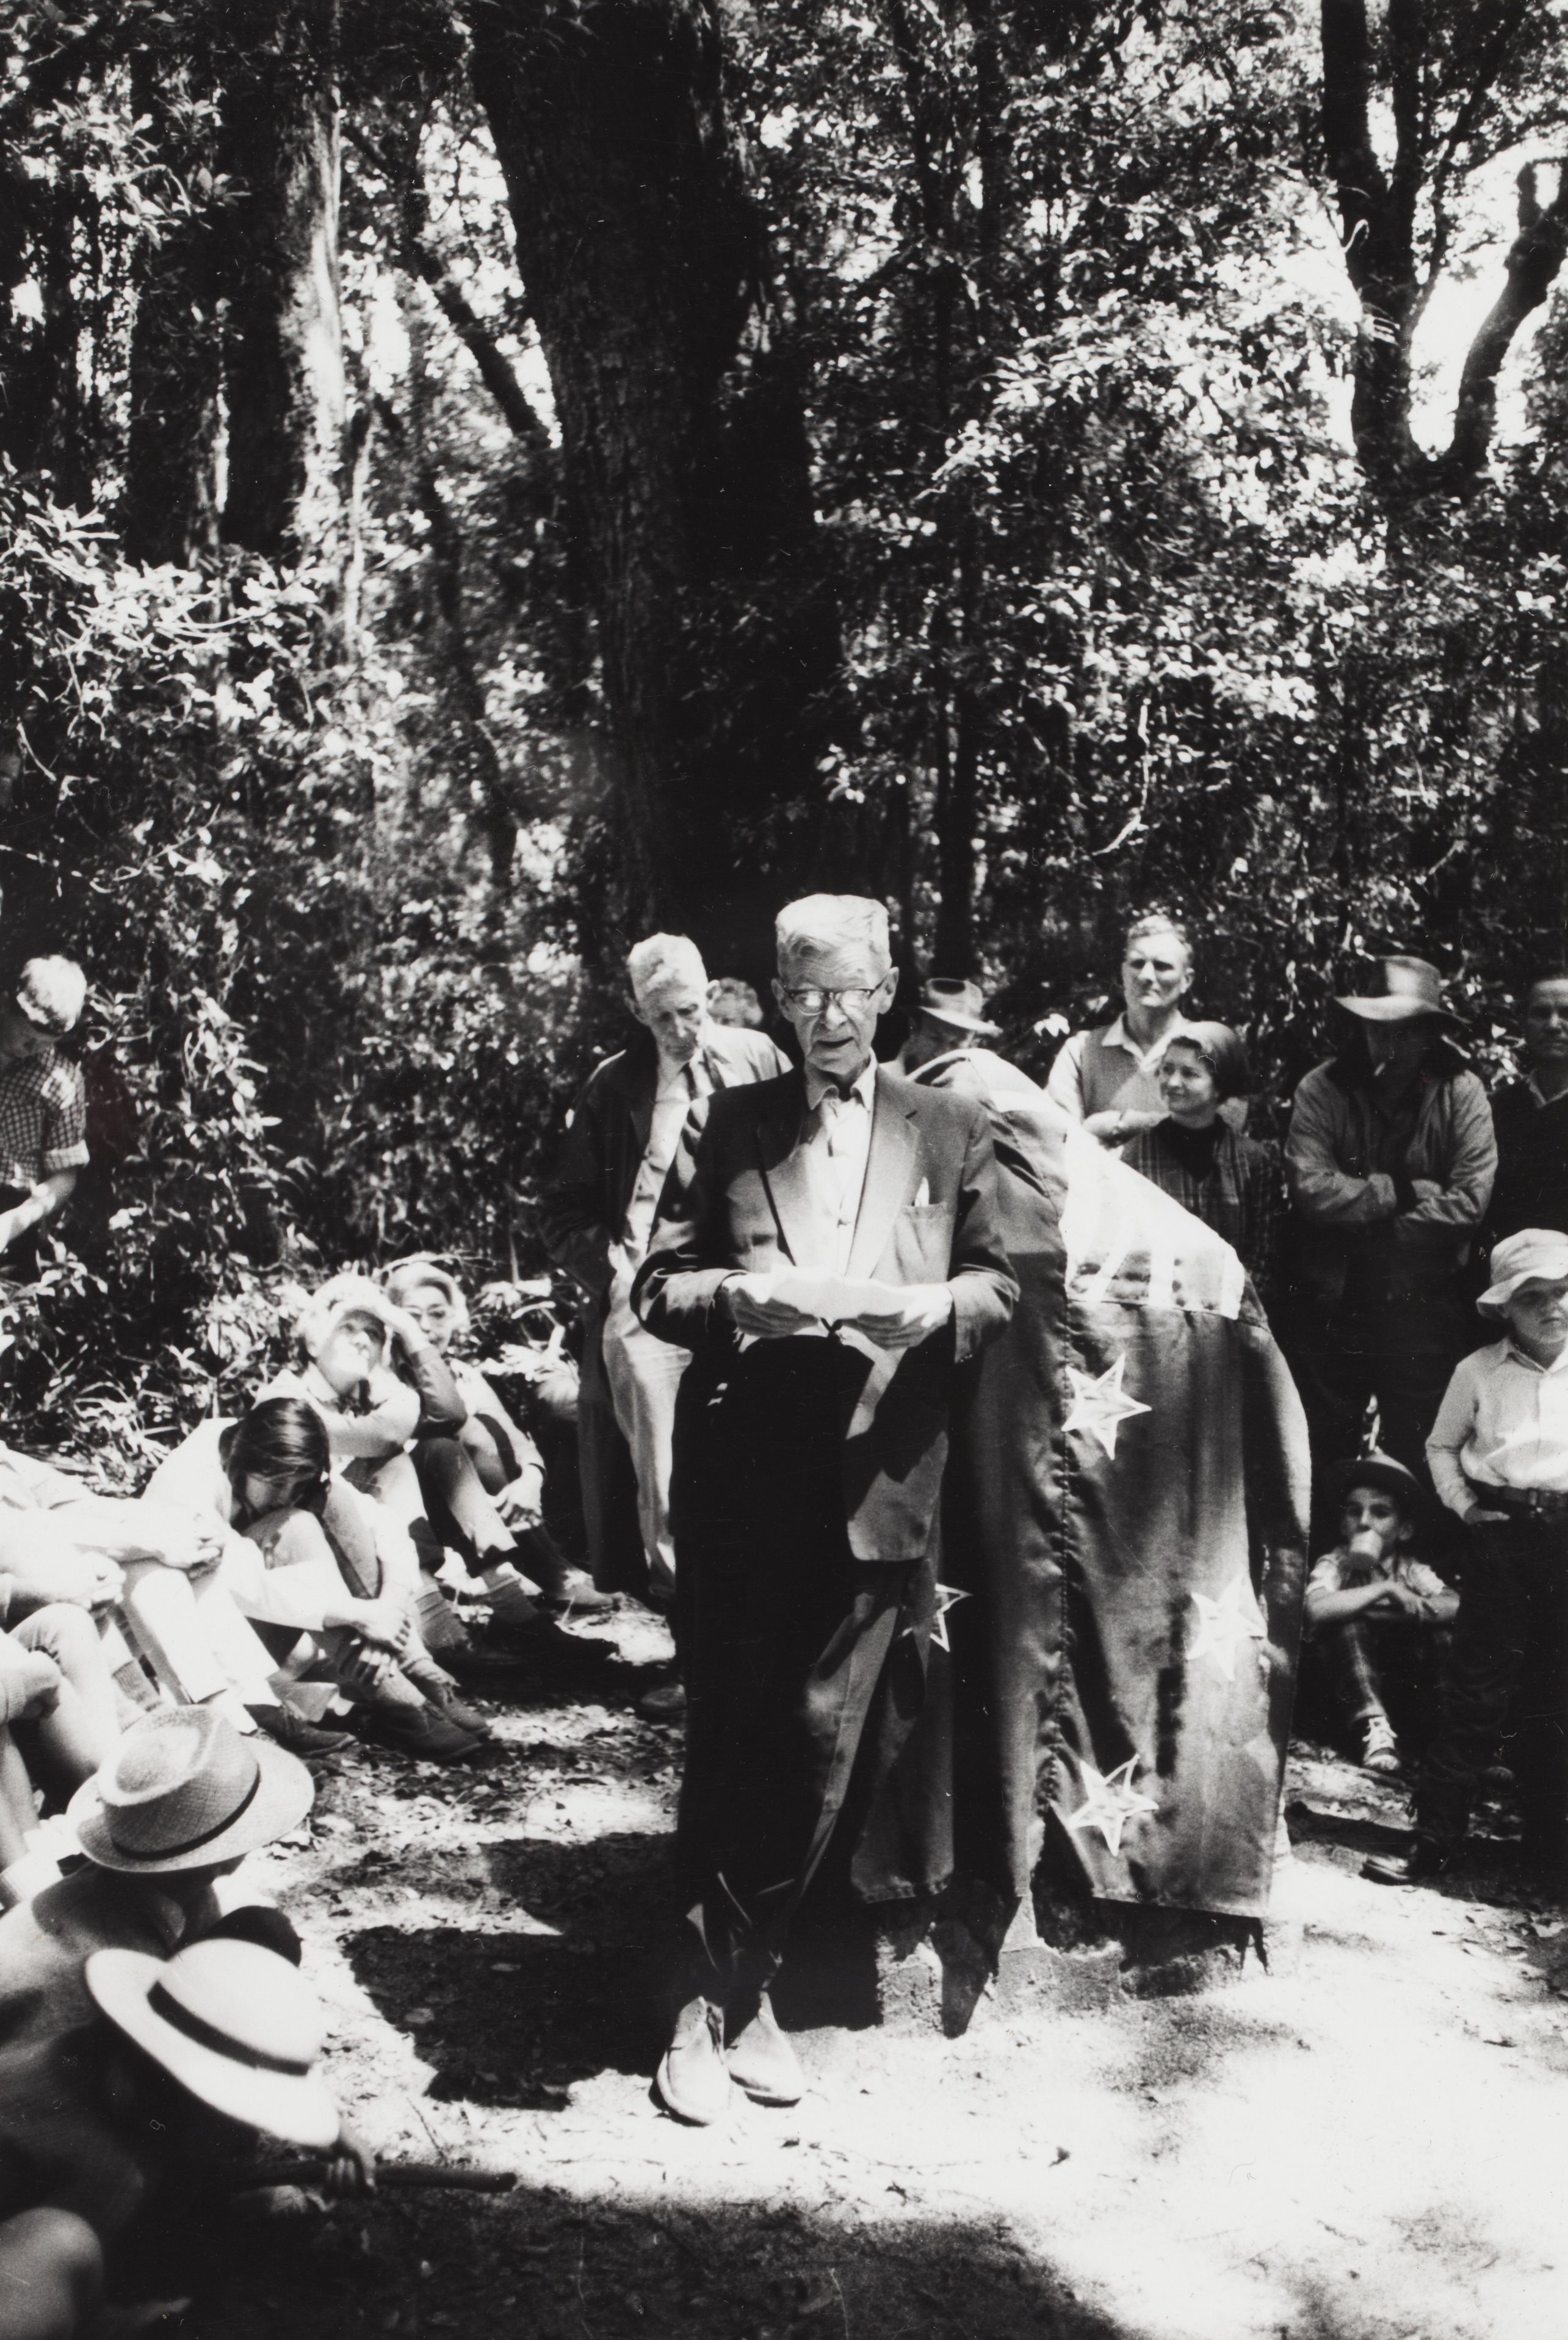 Chisholm unveiling a cairn at one of his favourite birdwatching locations: Mt Bithongabel in the Lamington National Park, November 1966